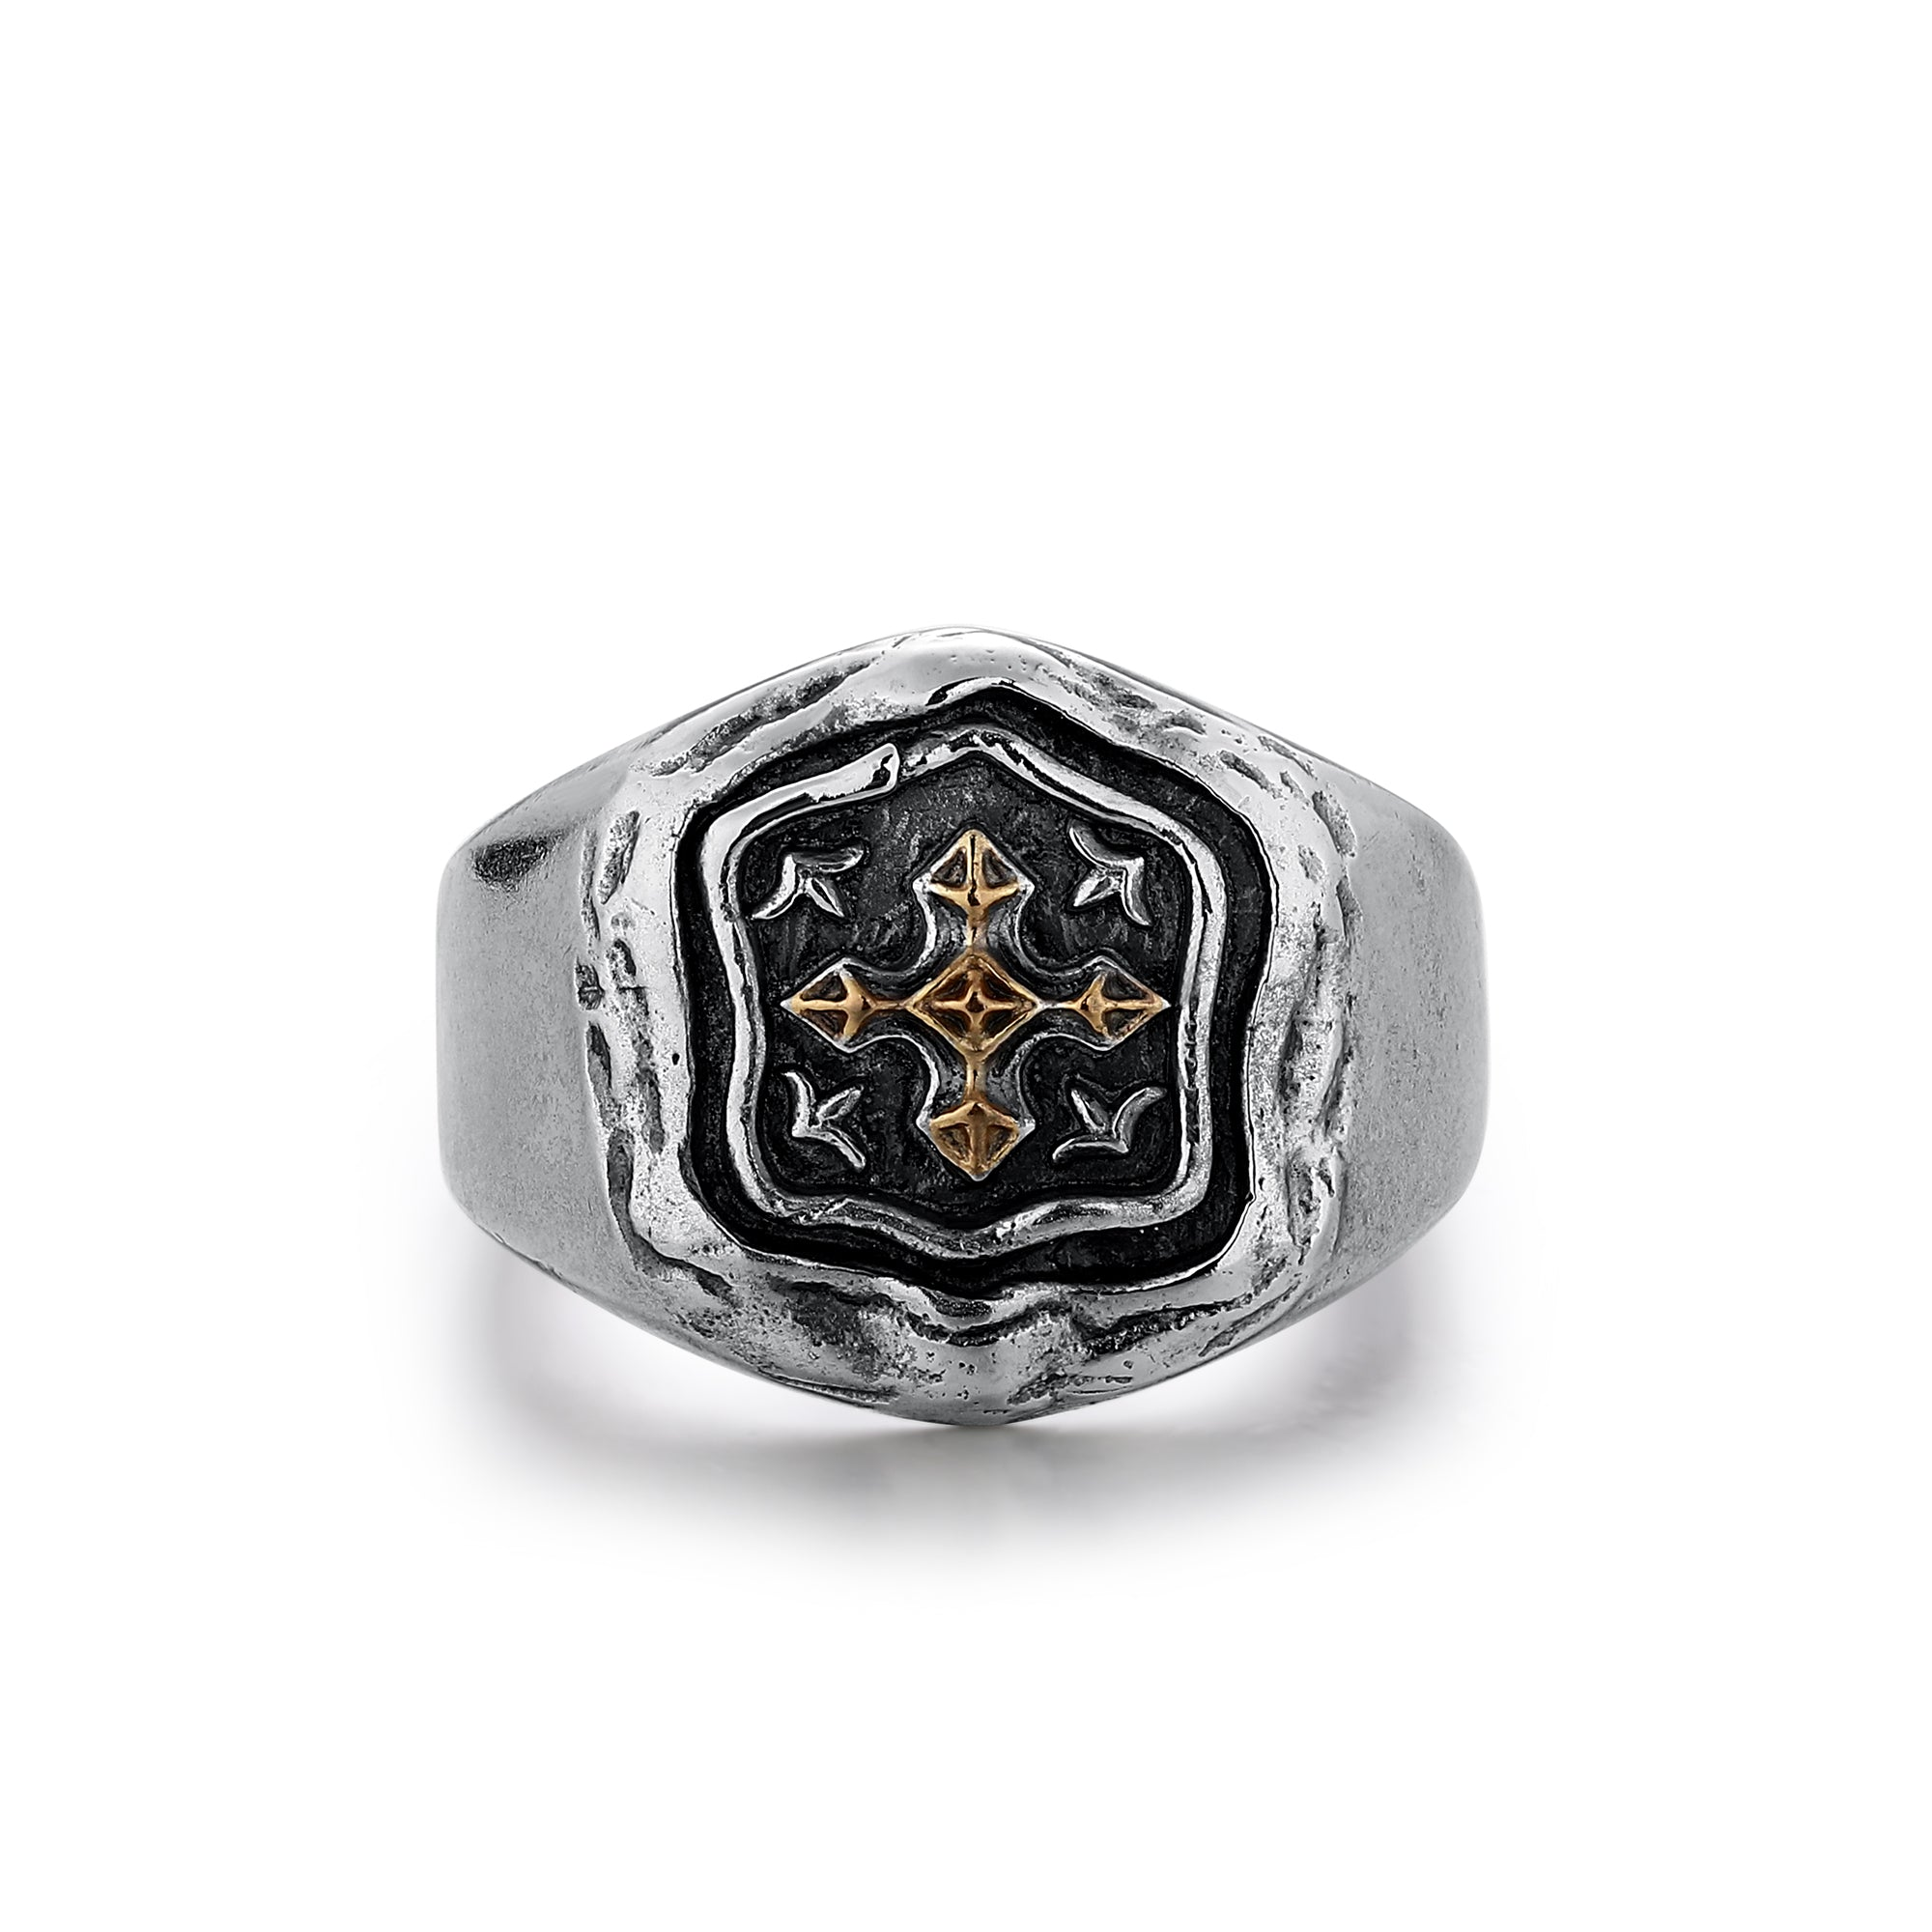 Silver Ring with Gold Highlighted Ornate Cross